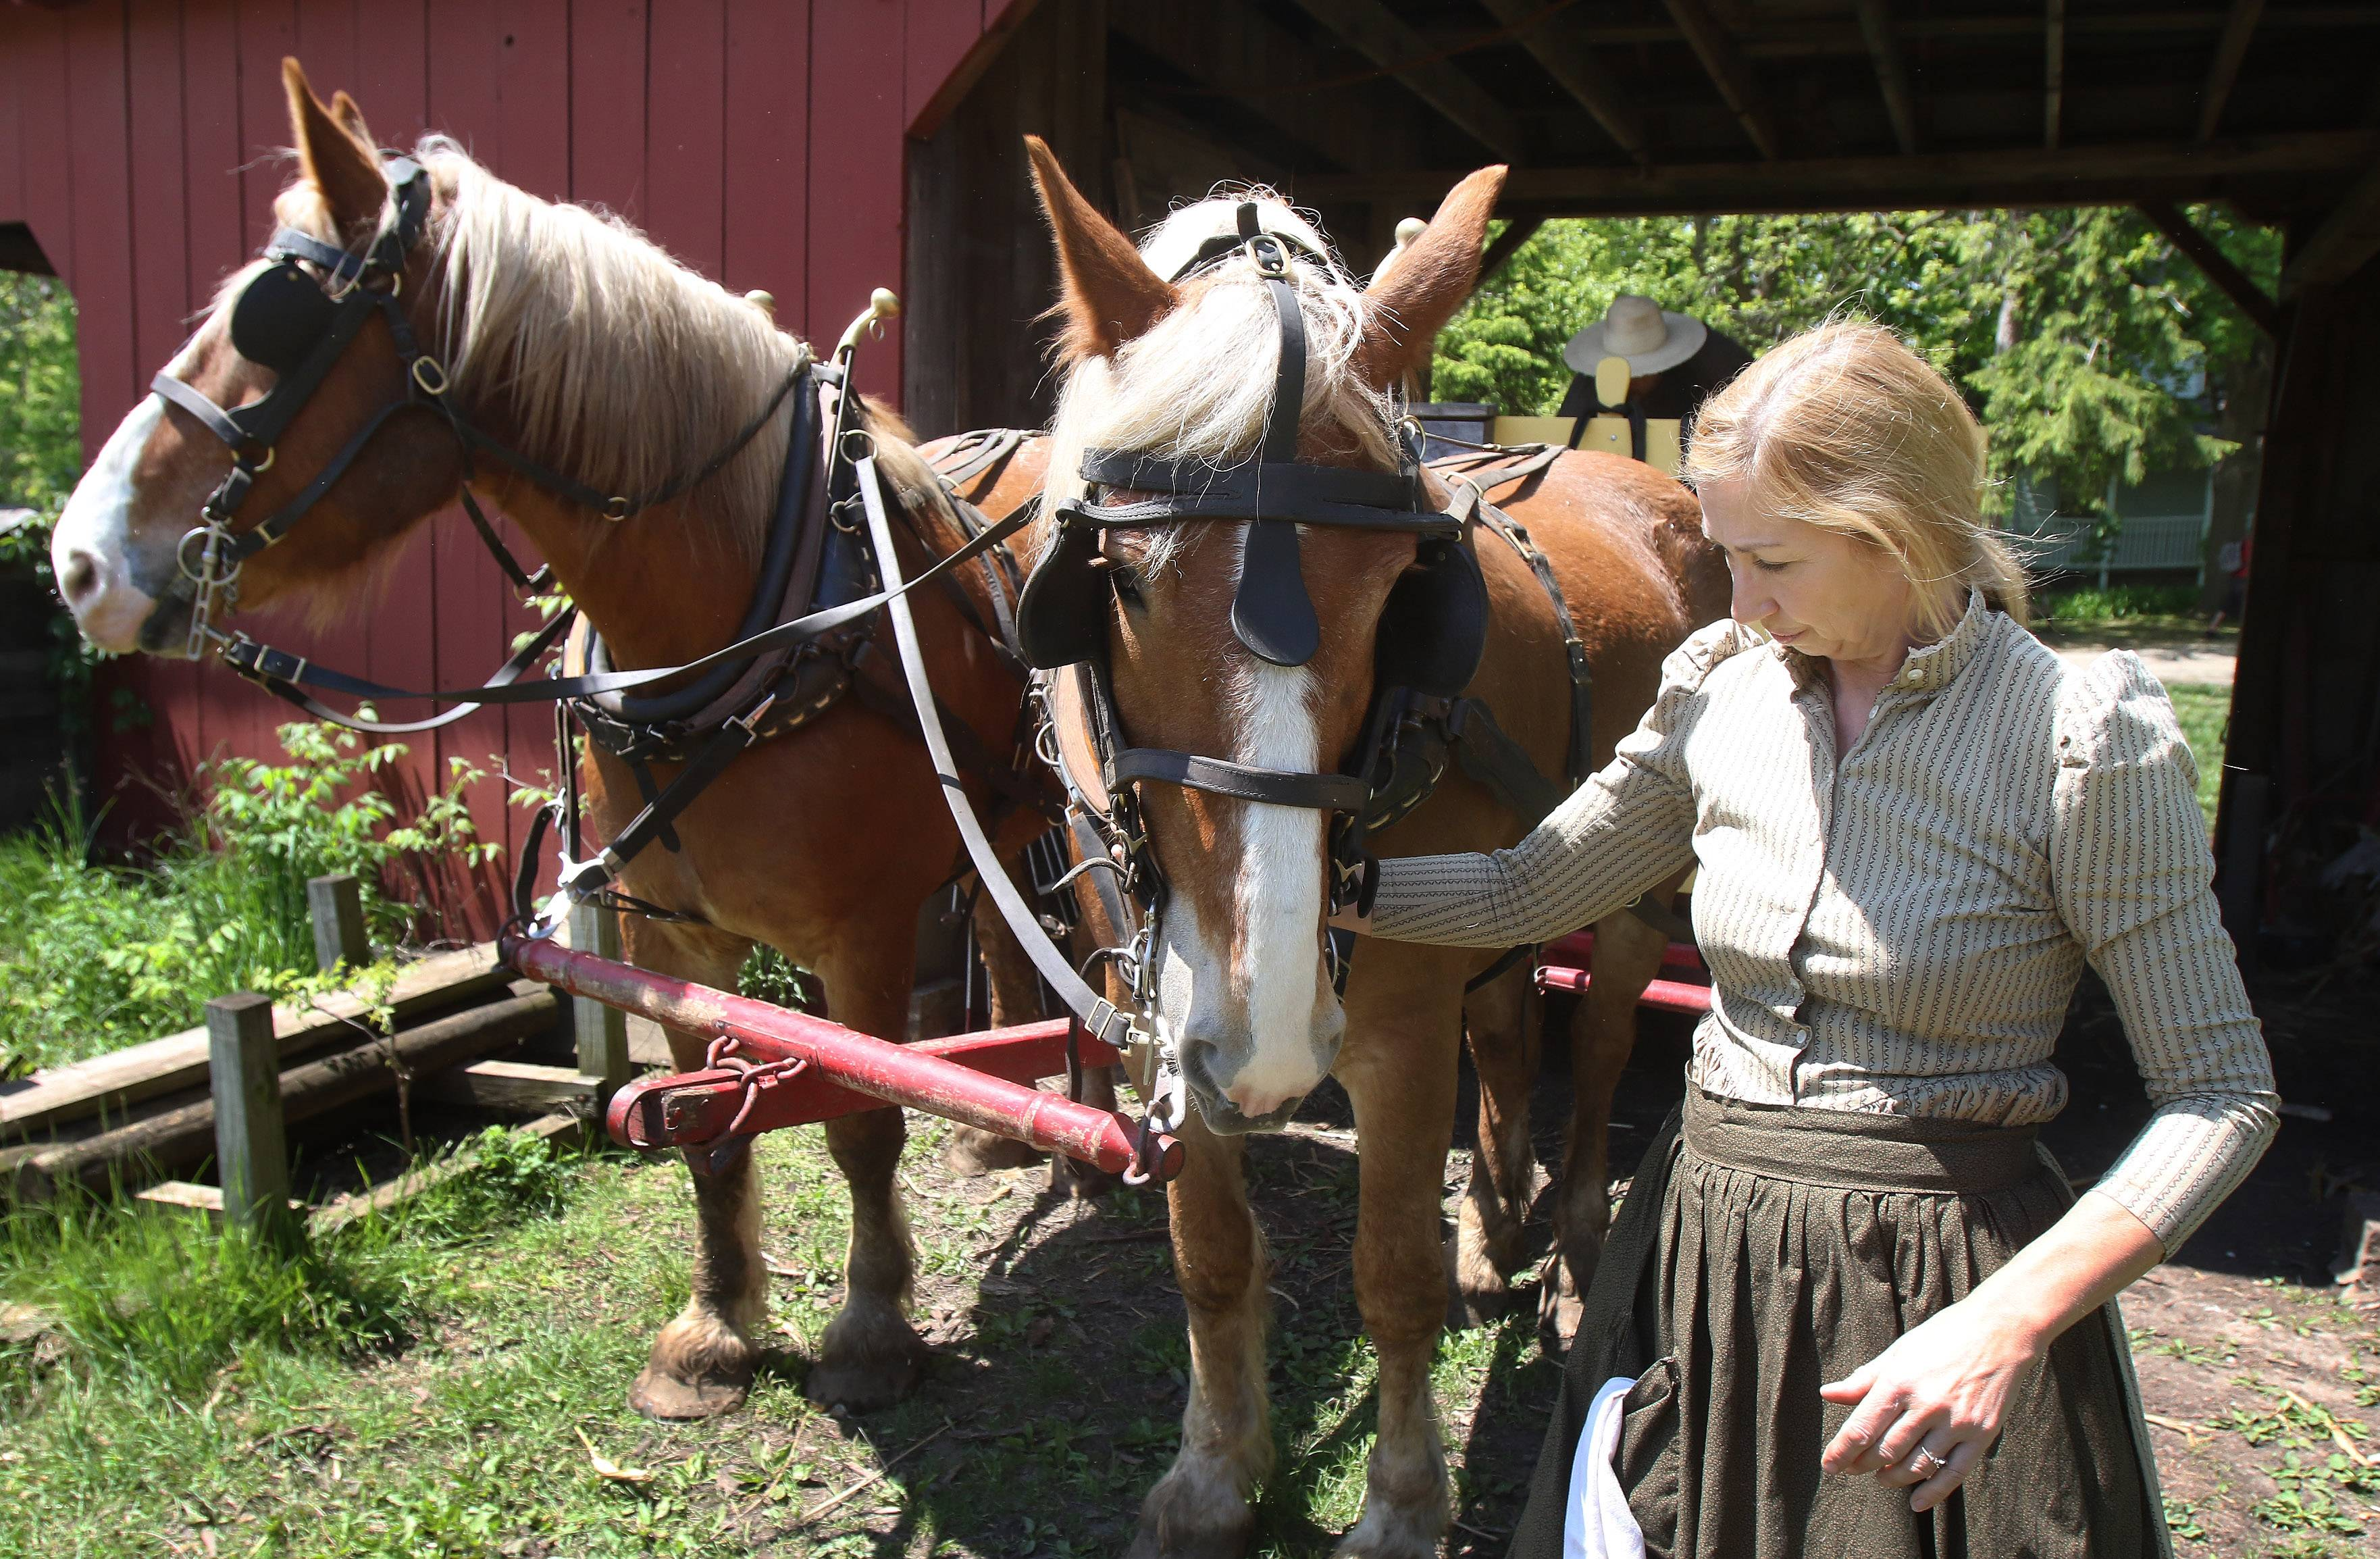 Caroline Bezik, interpreter of living history at the farm, connects the horses to the wagon at Volkening Heritage Farm in Schaumburg on Sunday. Families spent Mother's Day at the Spring Valley Nature Center farm learning about the farm, animals, and the history of Schaumburg's farm families.